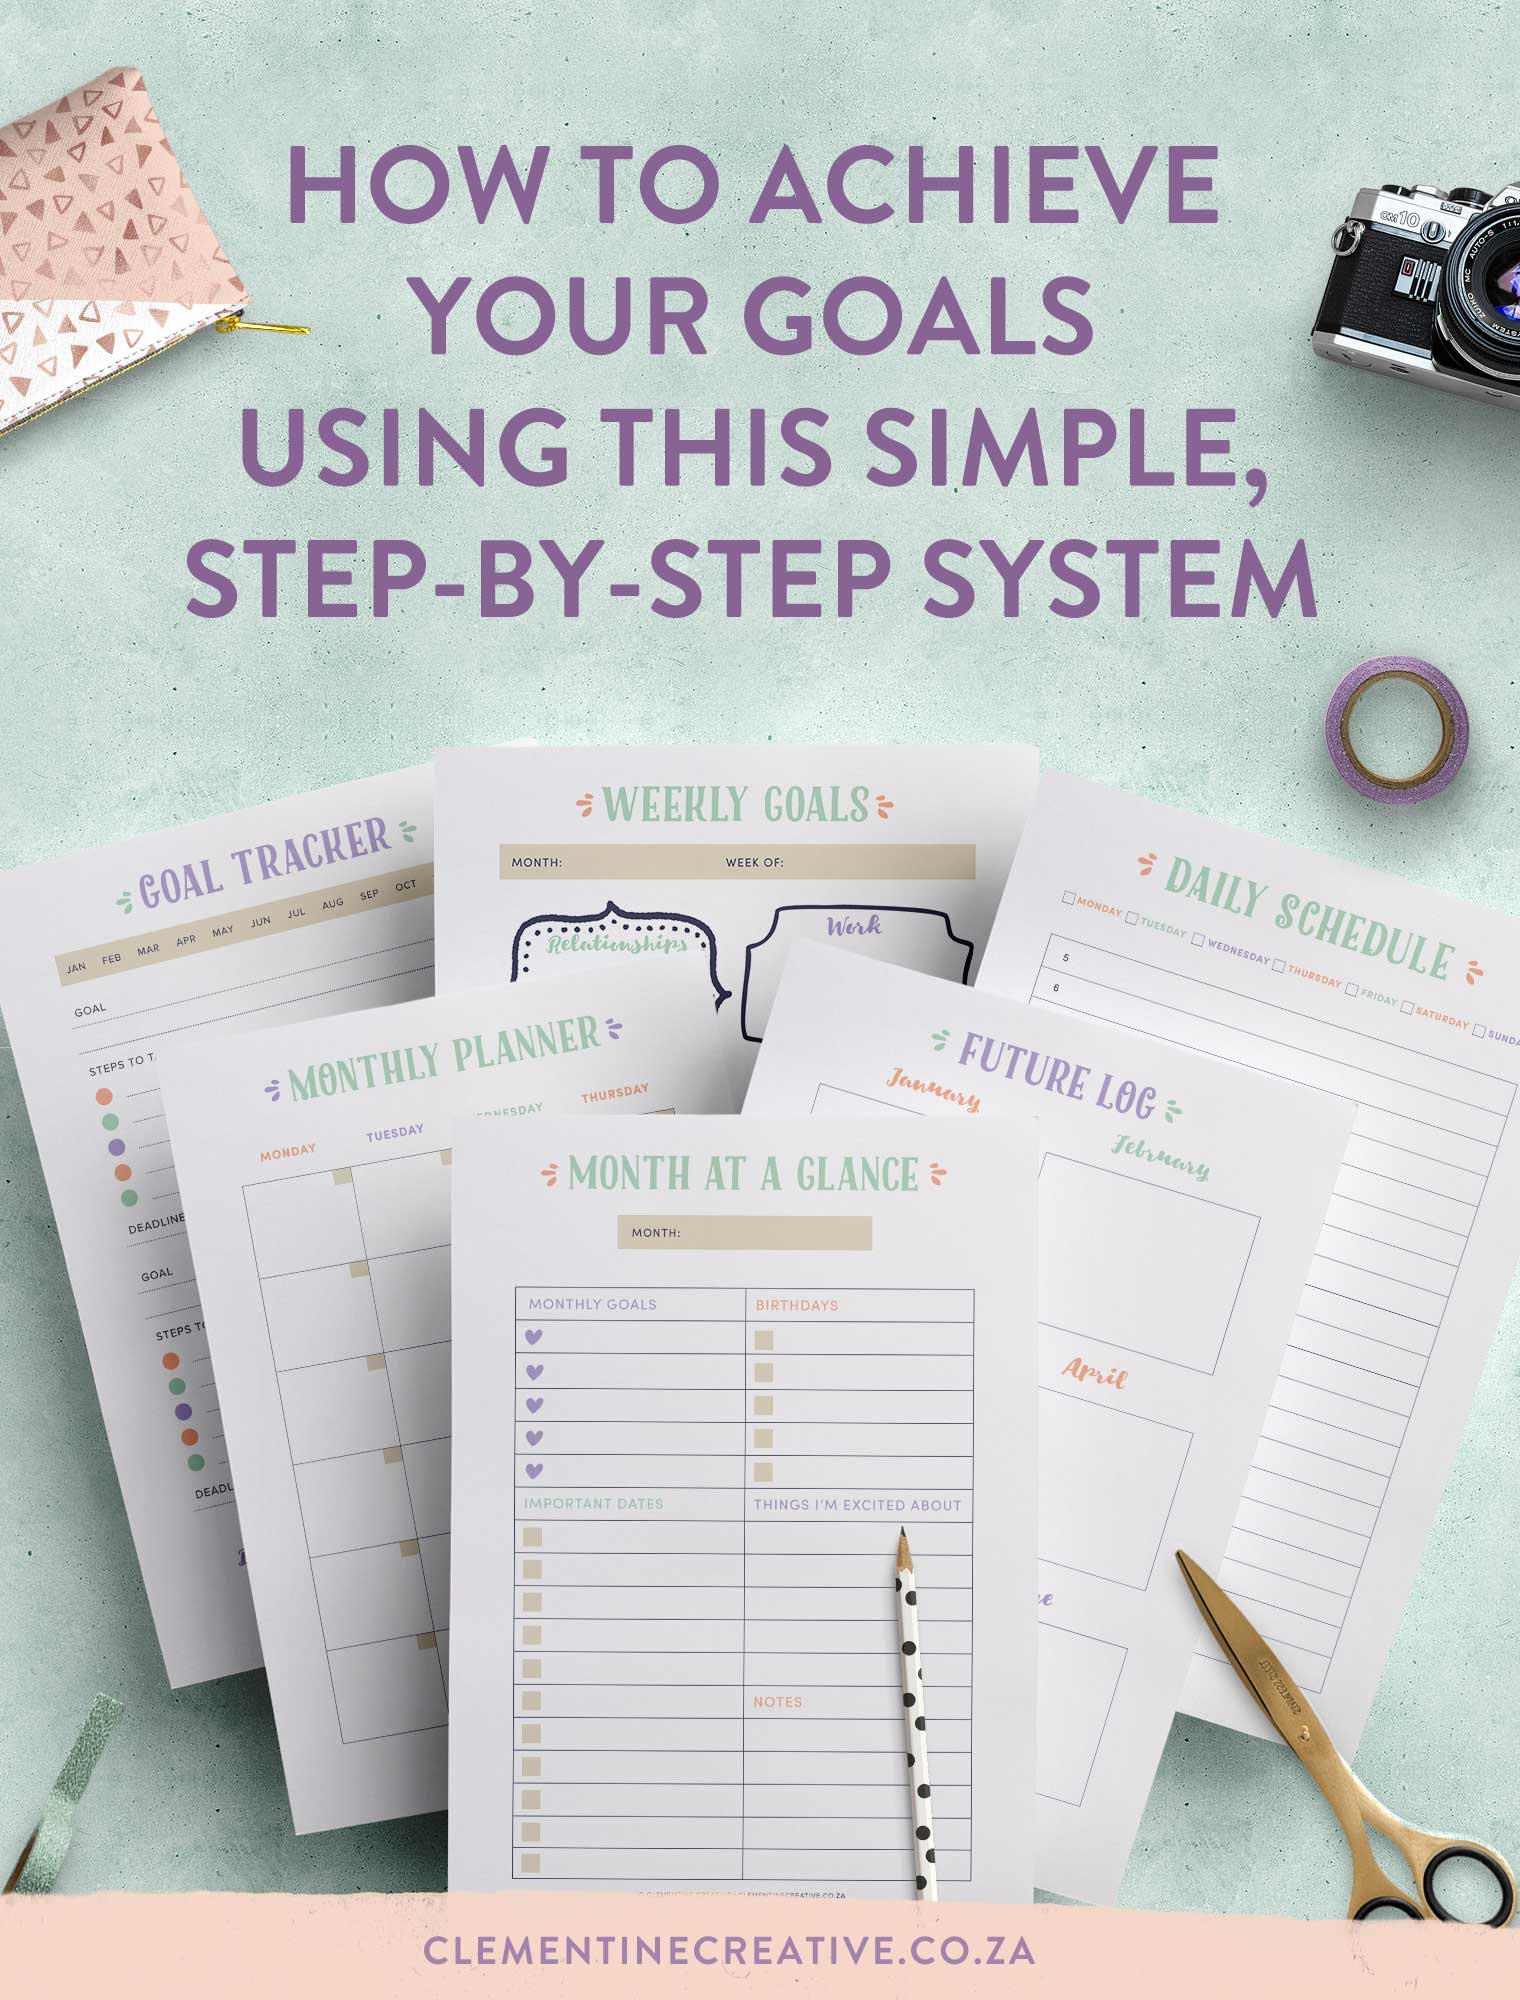 How to set and achieve goals with this simple, step-by-step system. I'll show you how to make goal setting easy and fun! Click here to read more.